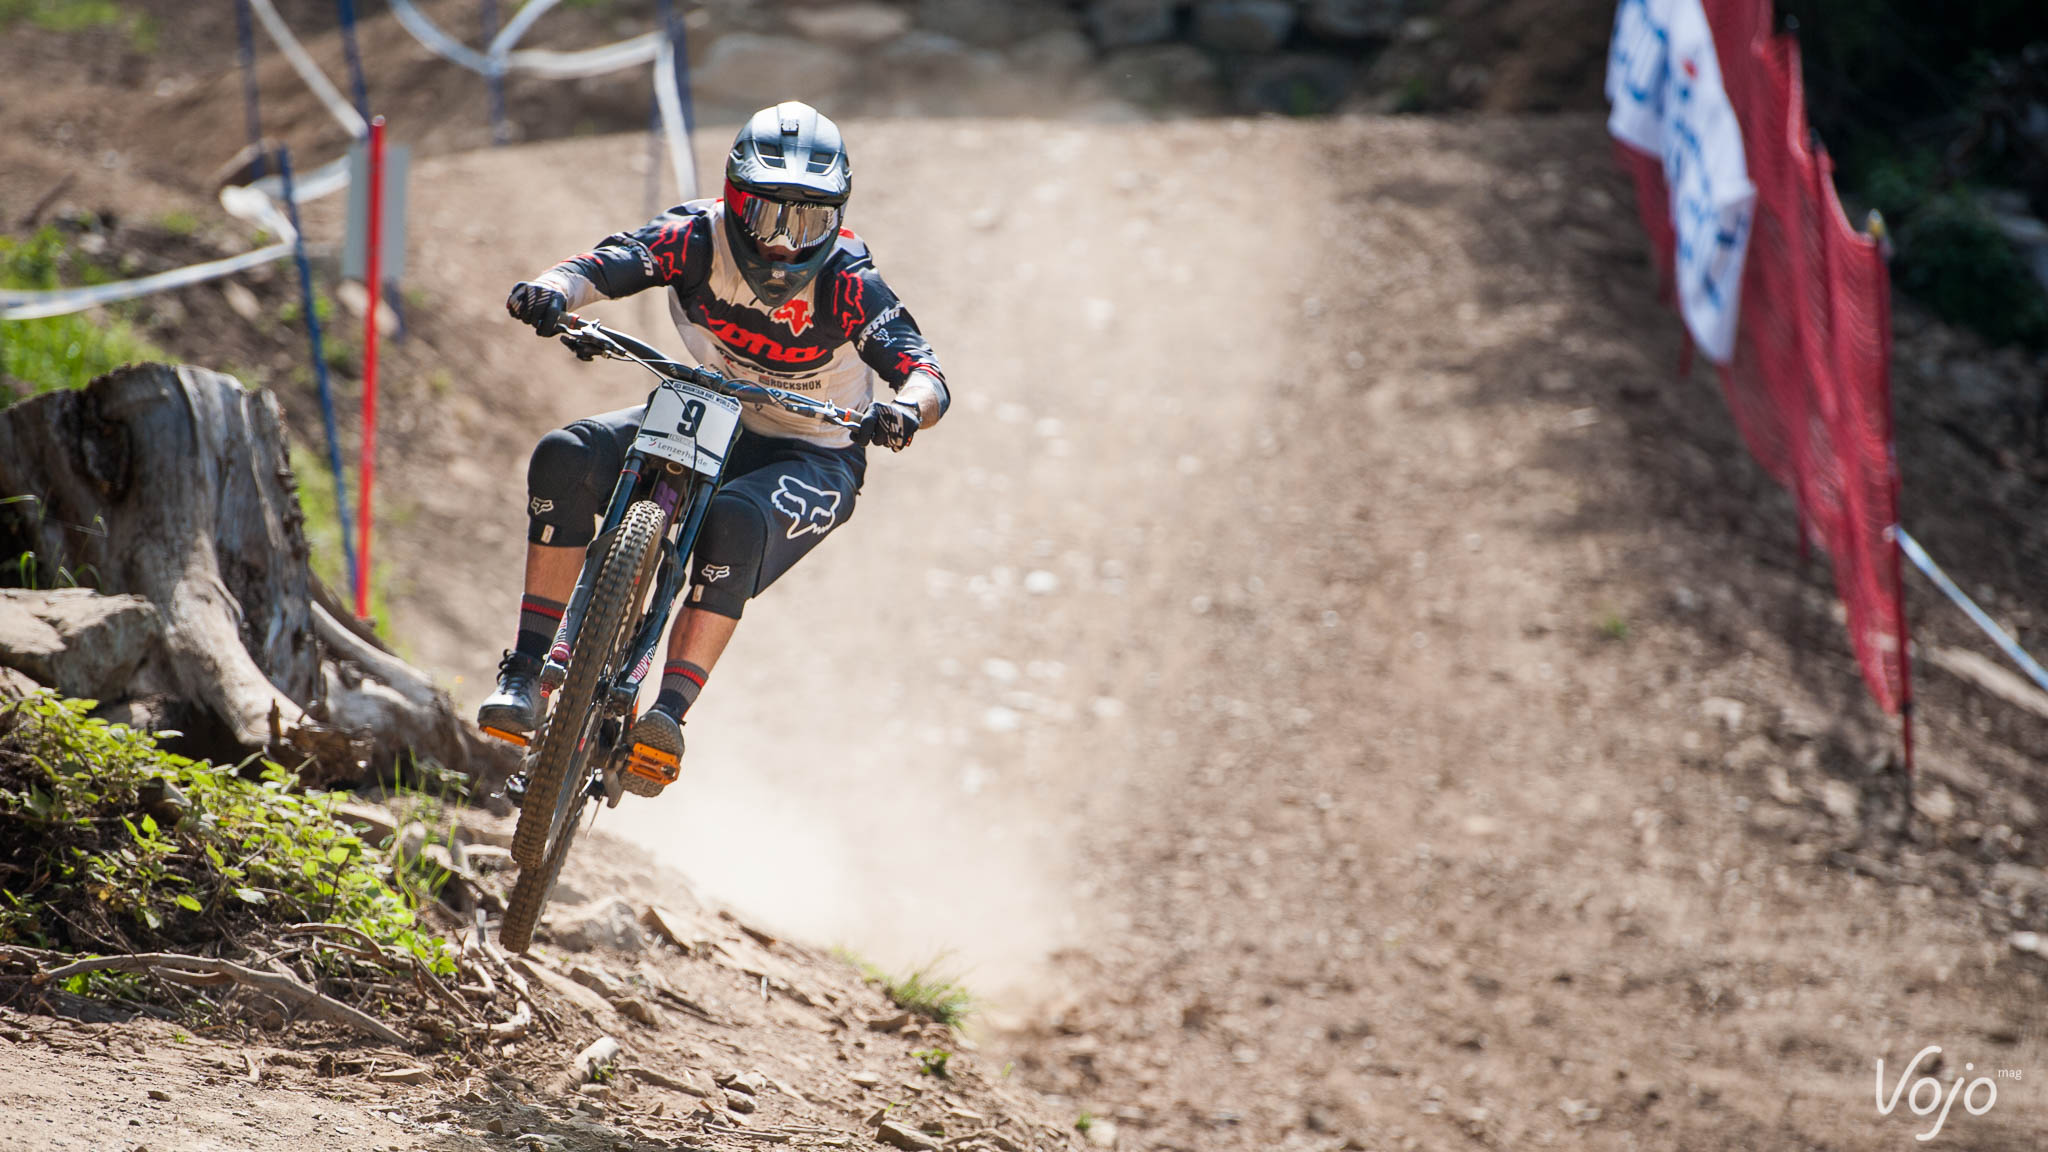 World_Cup_Lenzerheide_DH_Copyright_VojoMag-14